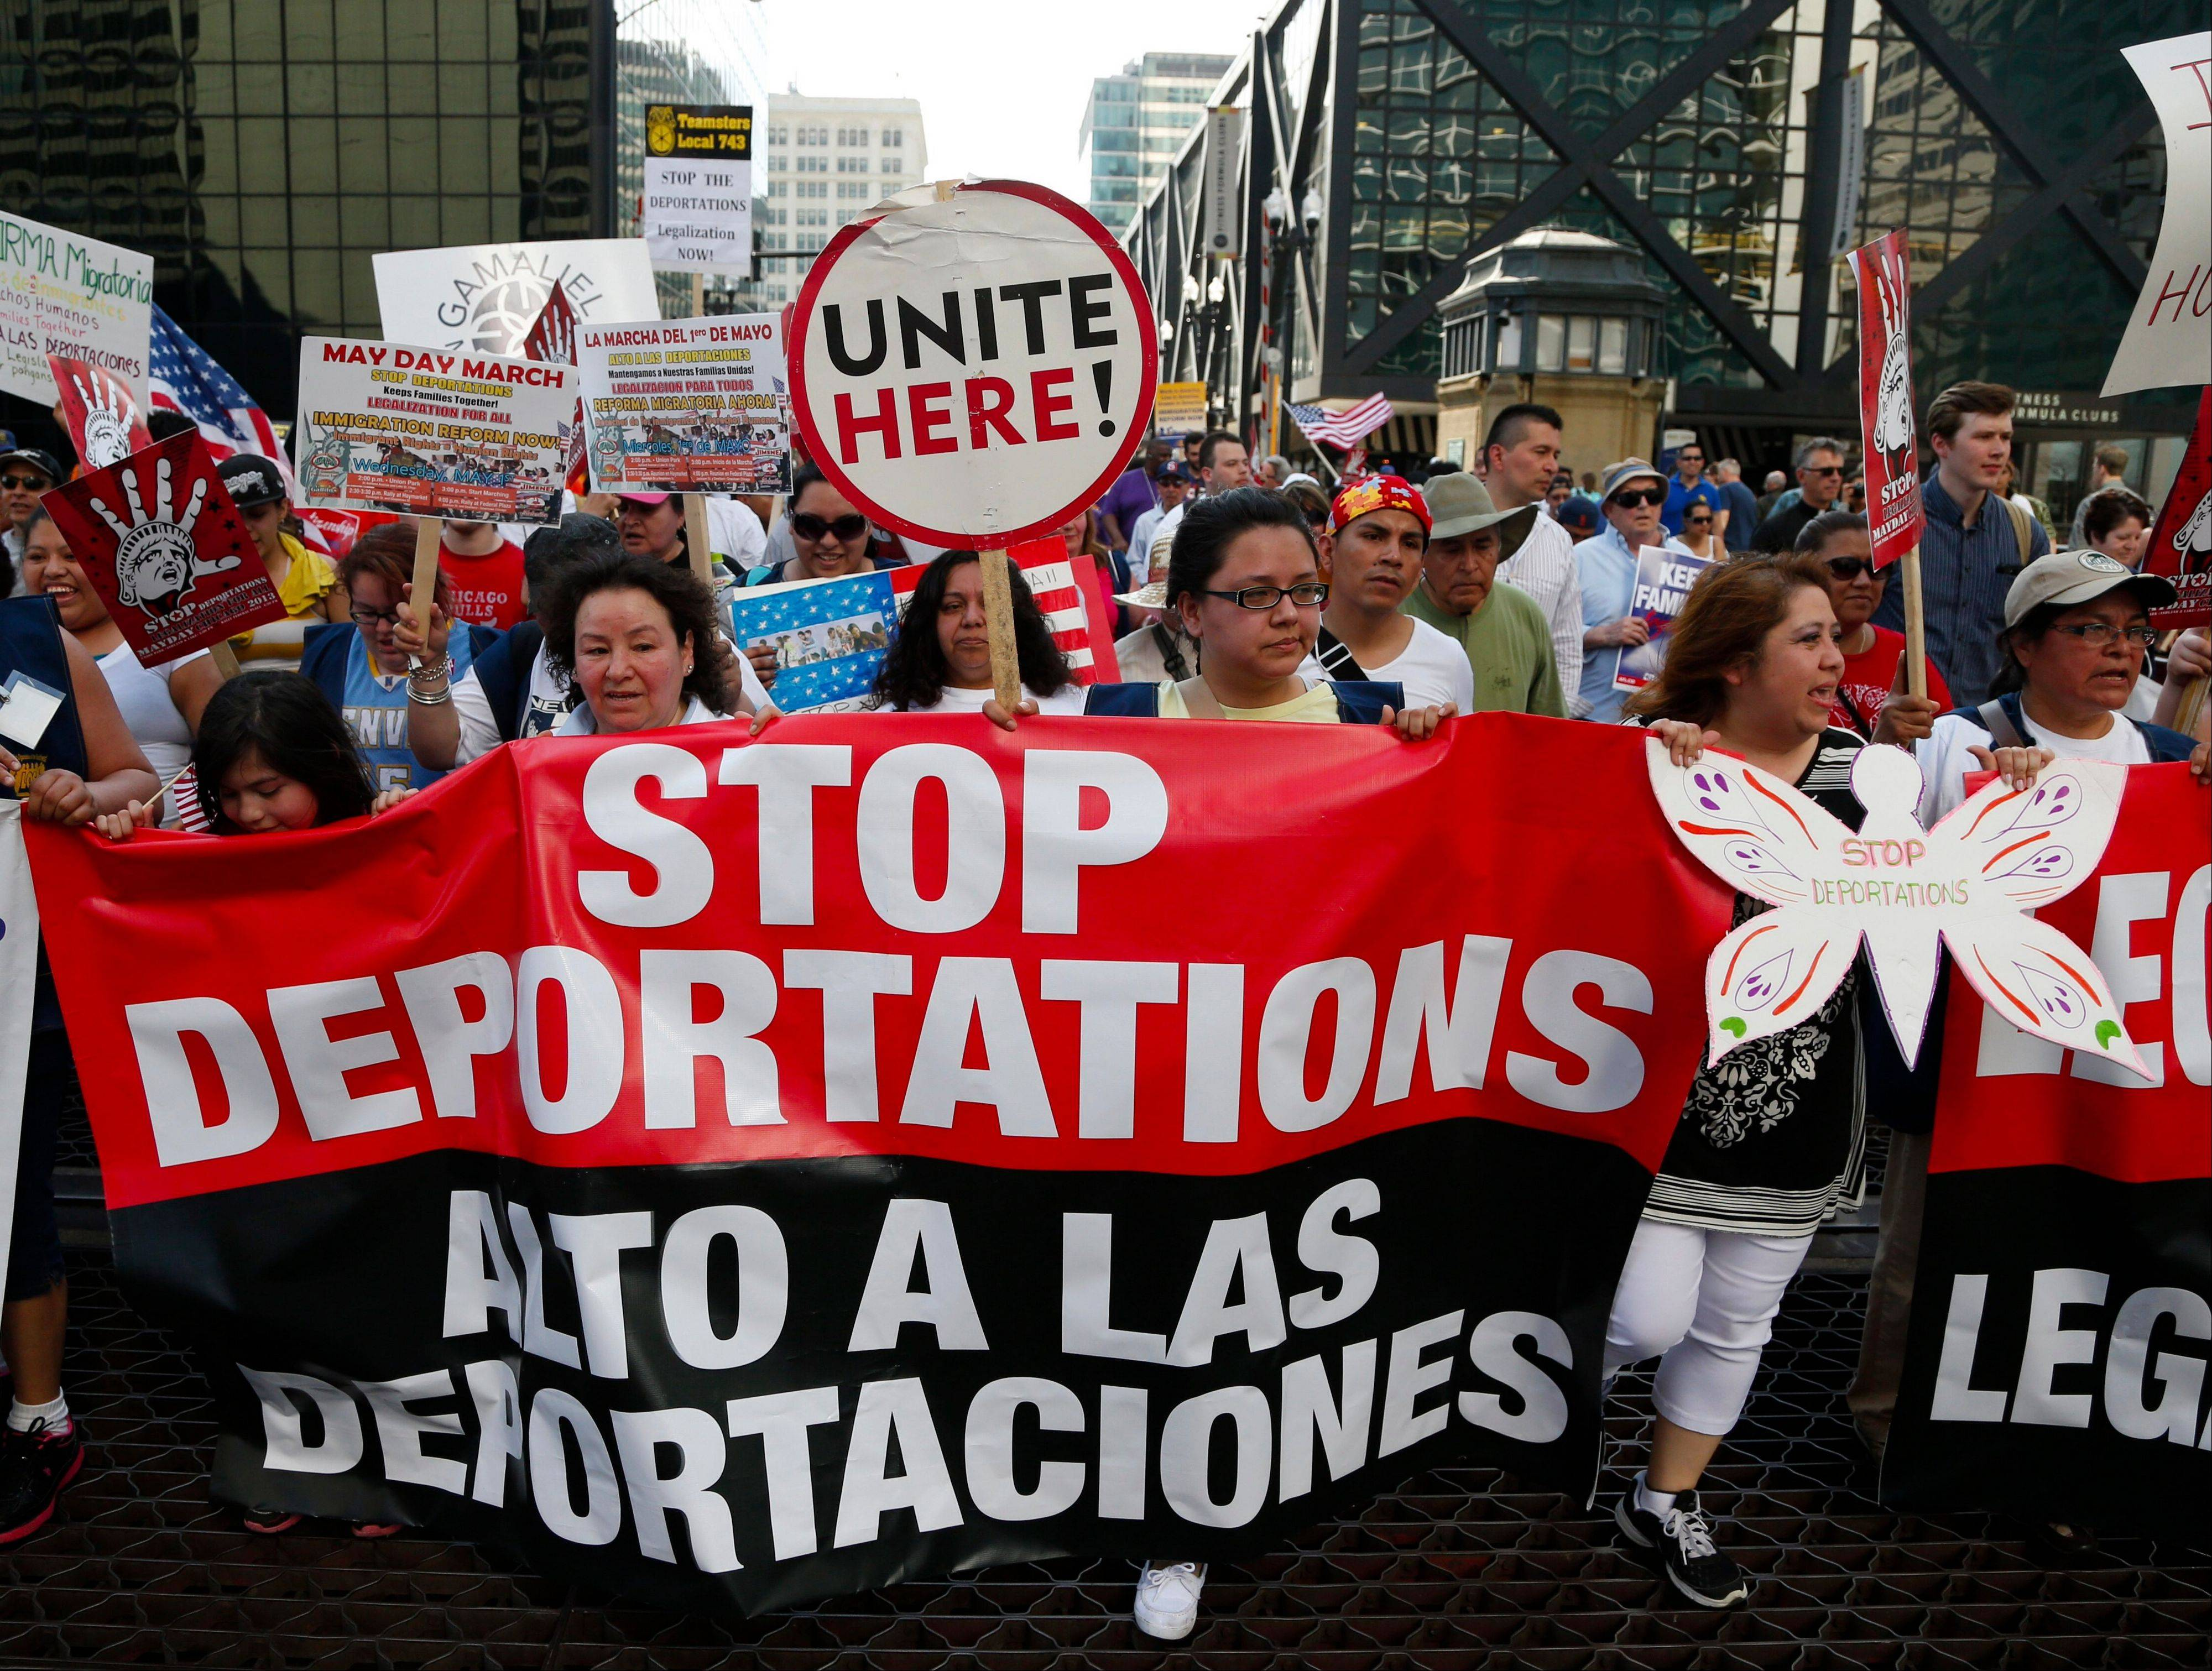 Thousands of people marched for immigration reform Wednesday in Chicago.